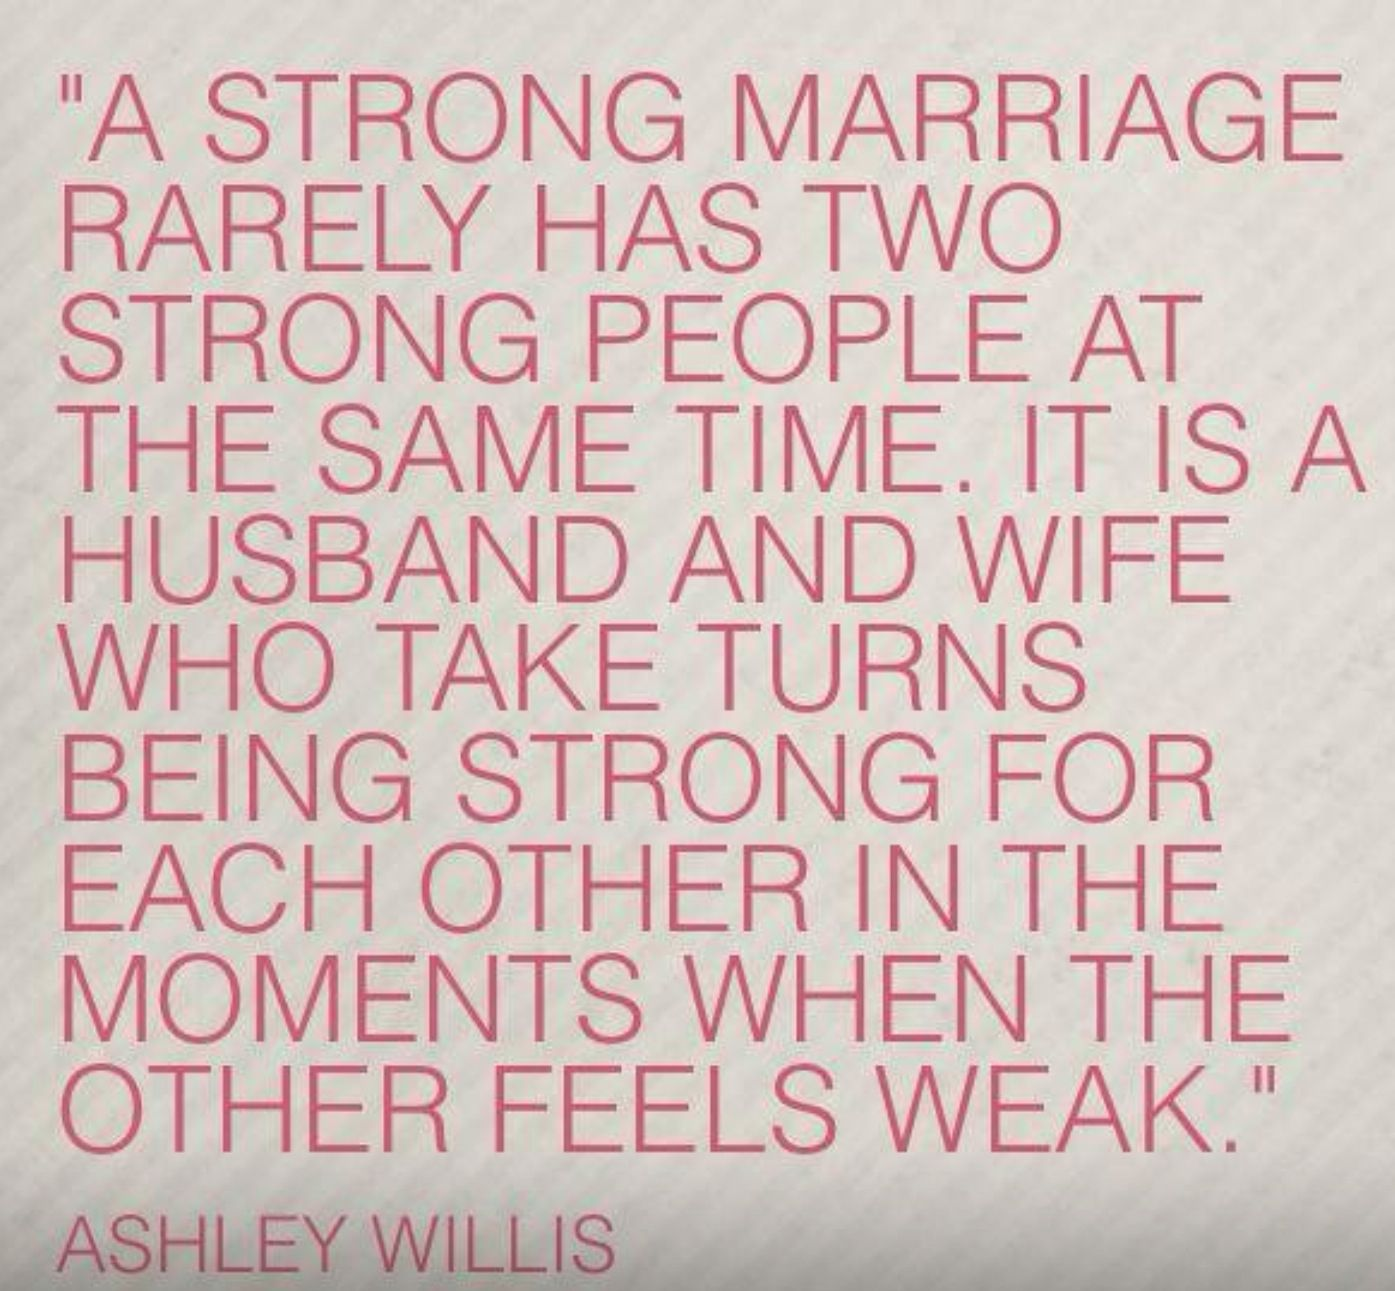 A strong marriage rarely has two strong people at the same time It s usually a husband and wife taking turns being strong for the other